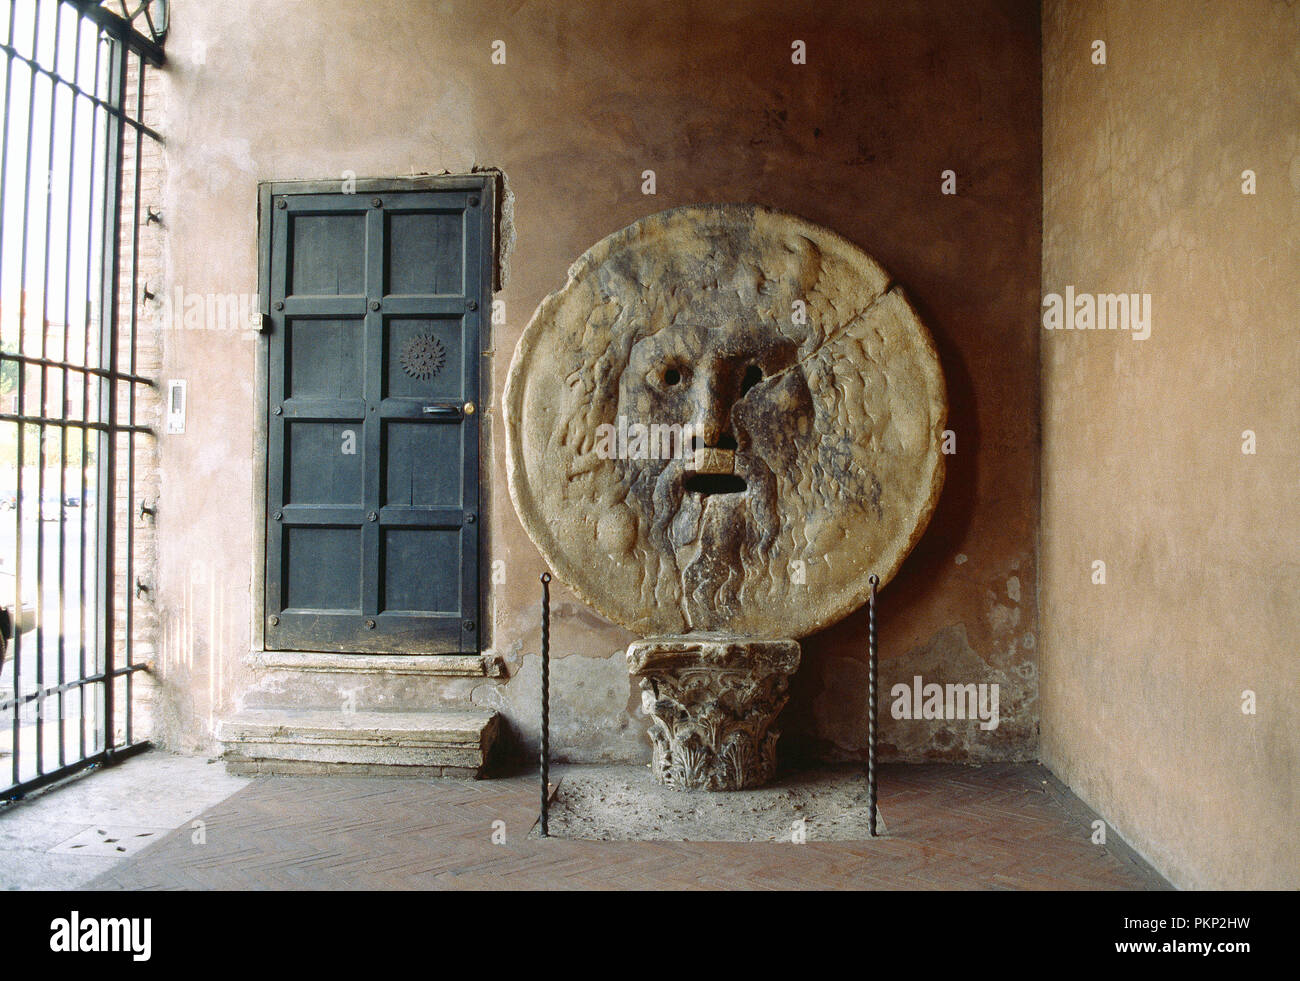 Italy. Rome. Santa Maria in Cosmedin church (former ancient prison) interior with stone carving of man's face or mask, the Mouth of Truth (Bocca della - Stock Image